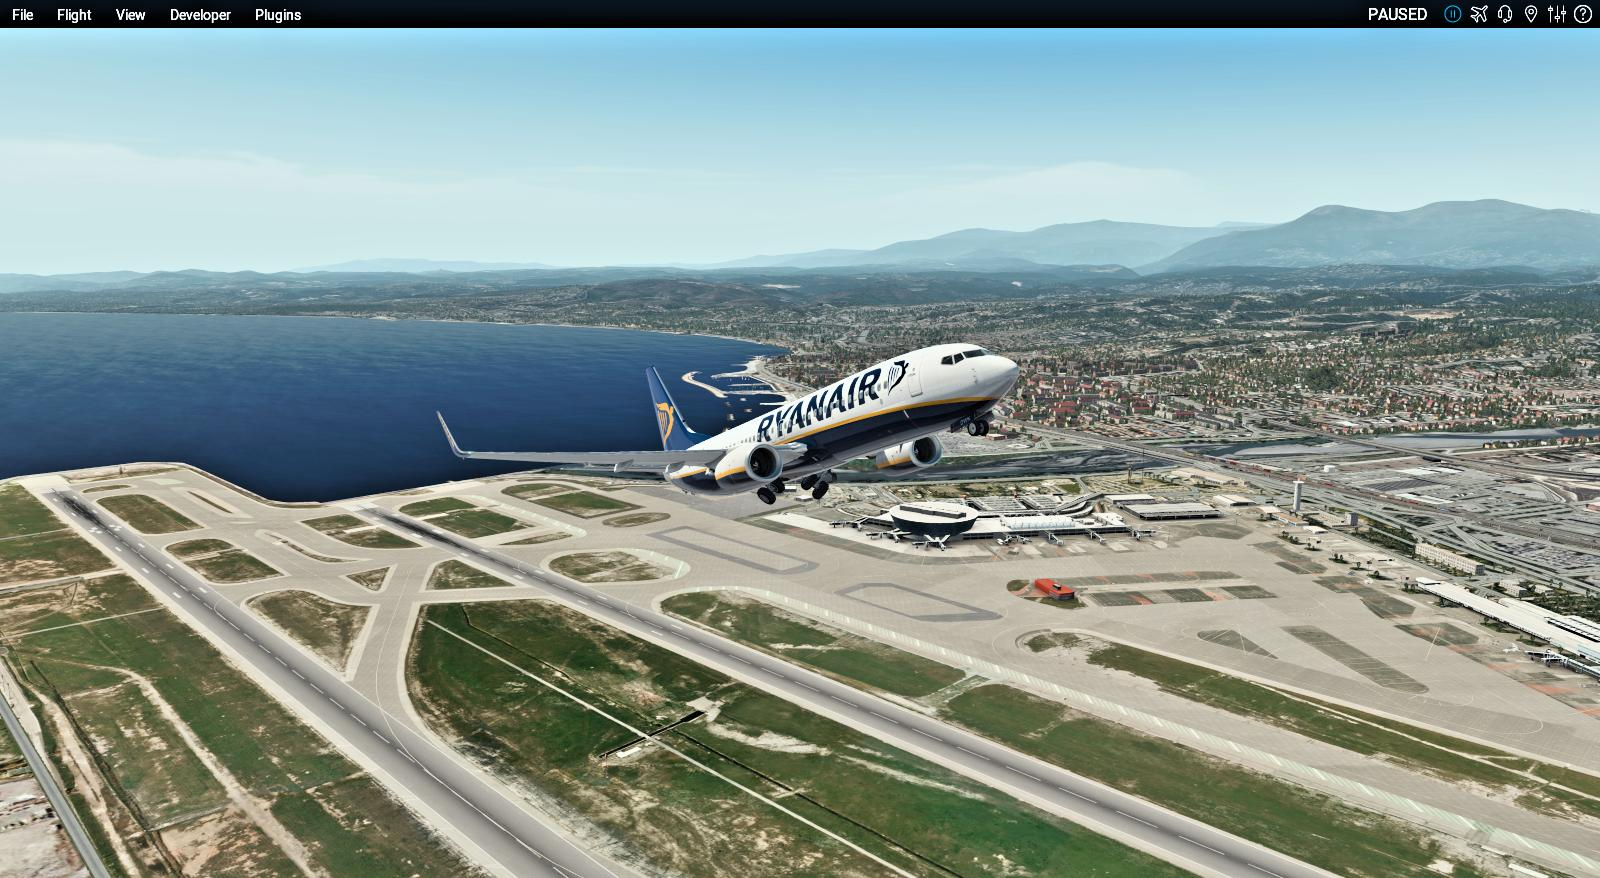 Presets for Reshade - Scenery Enhancement Packs - X-Plane Org Forum